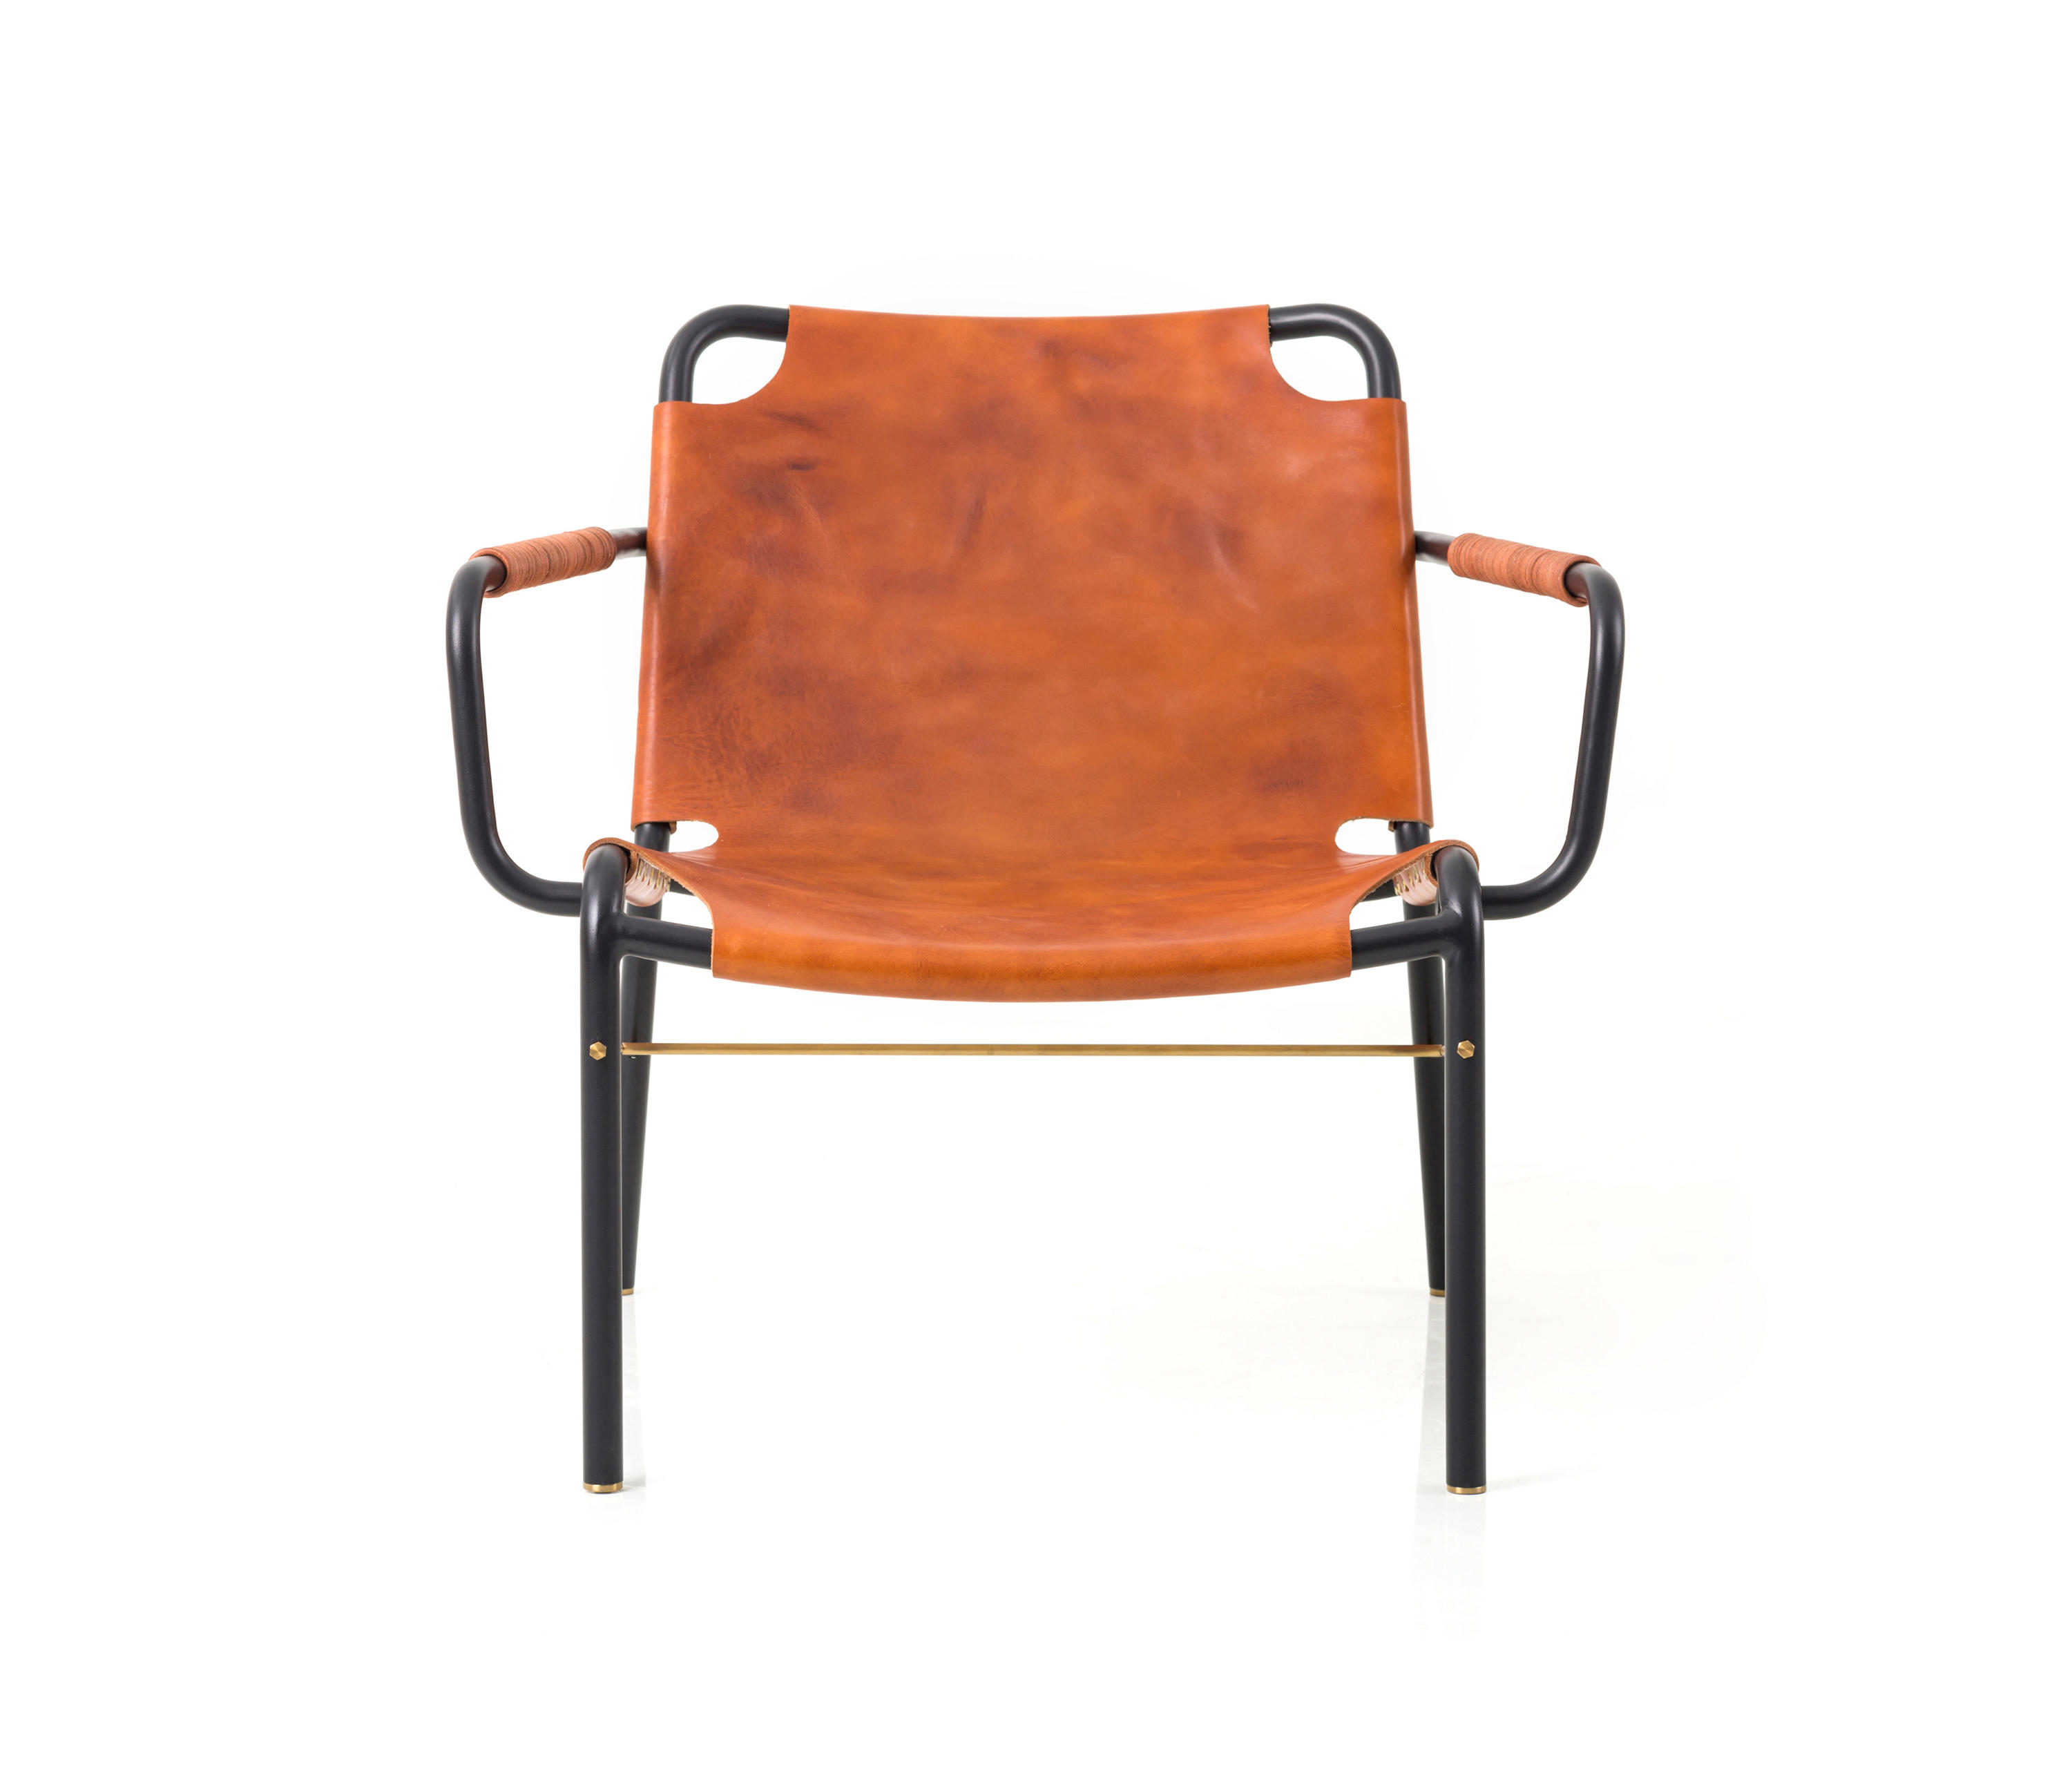 VALET LOUNGE CHAIR Lounge chairs from Stellar Works